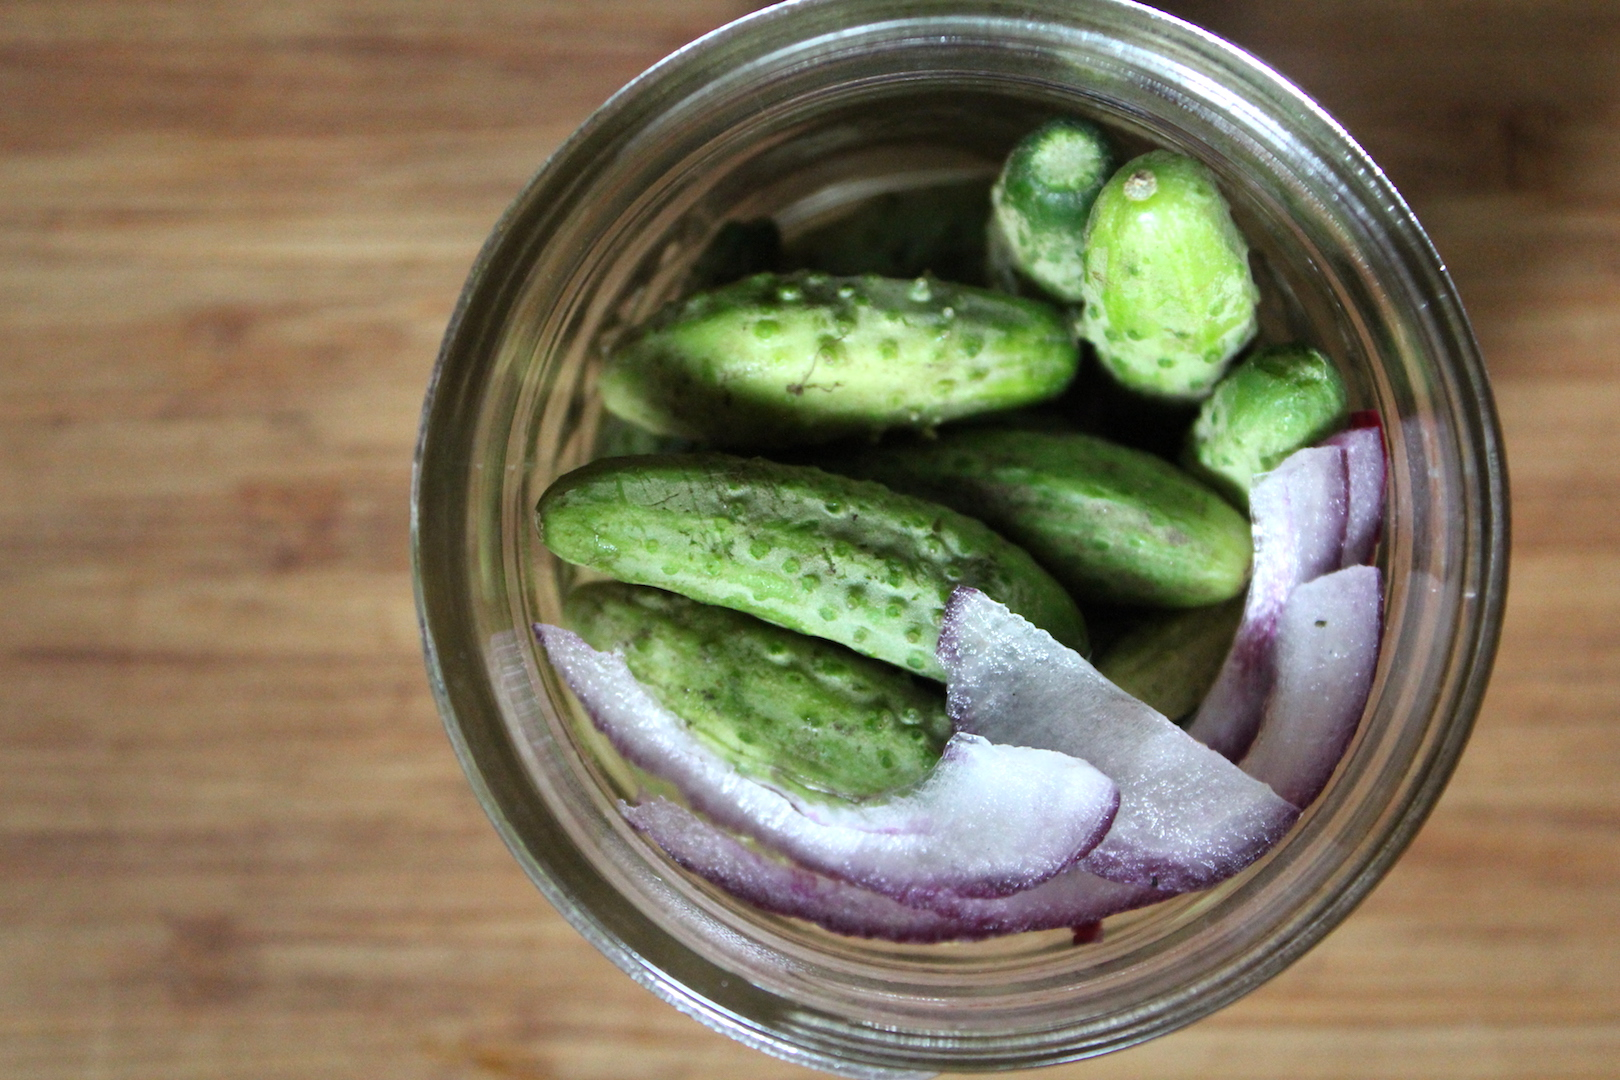 Packing Gherkins into Jars